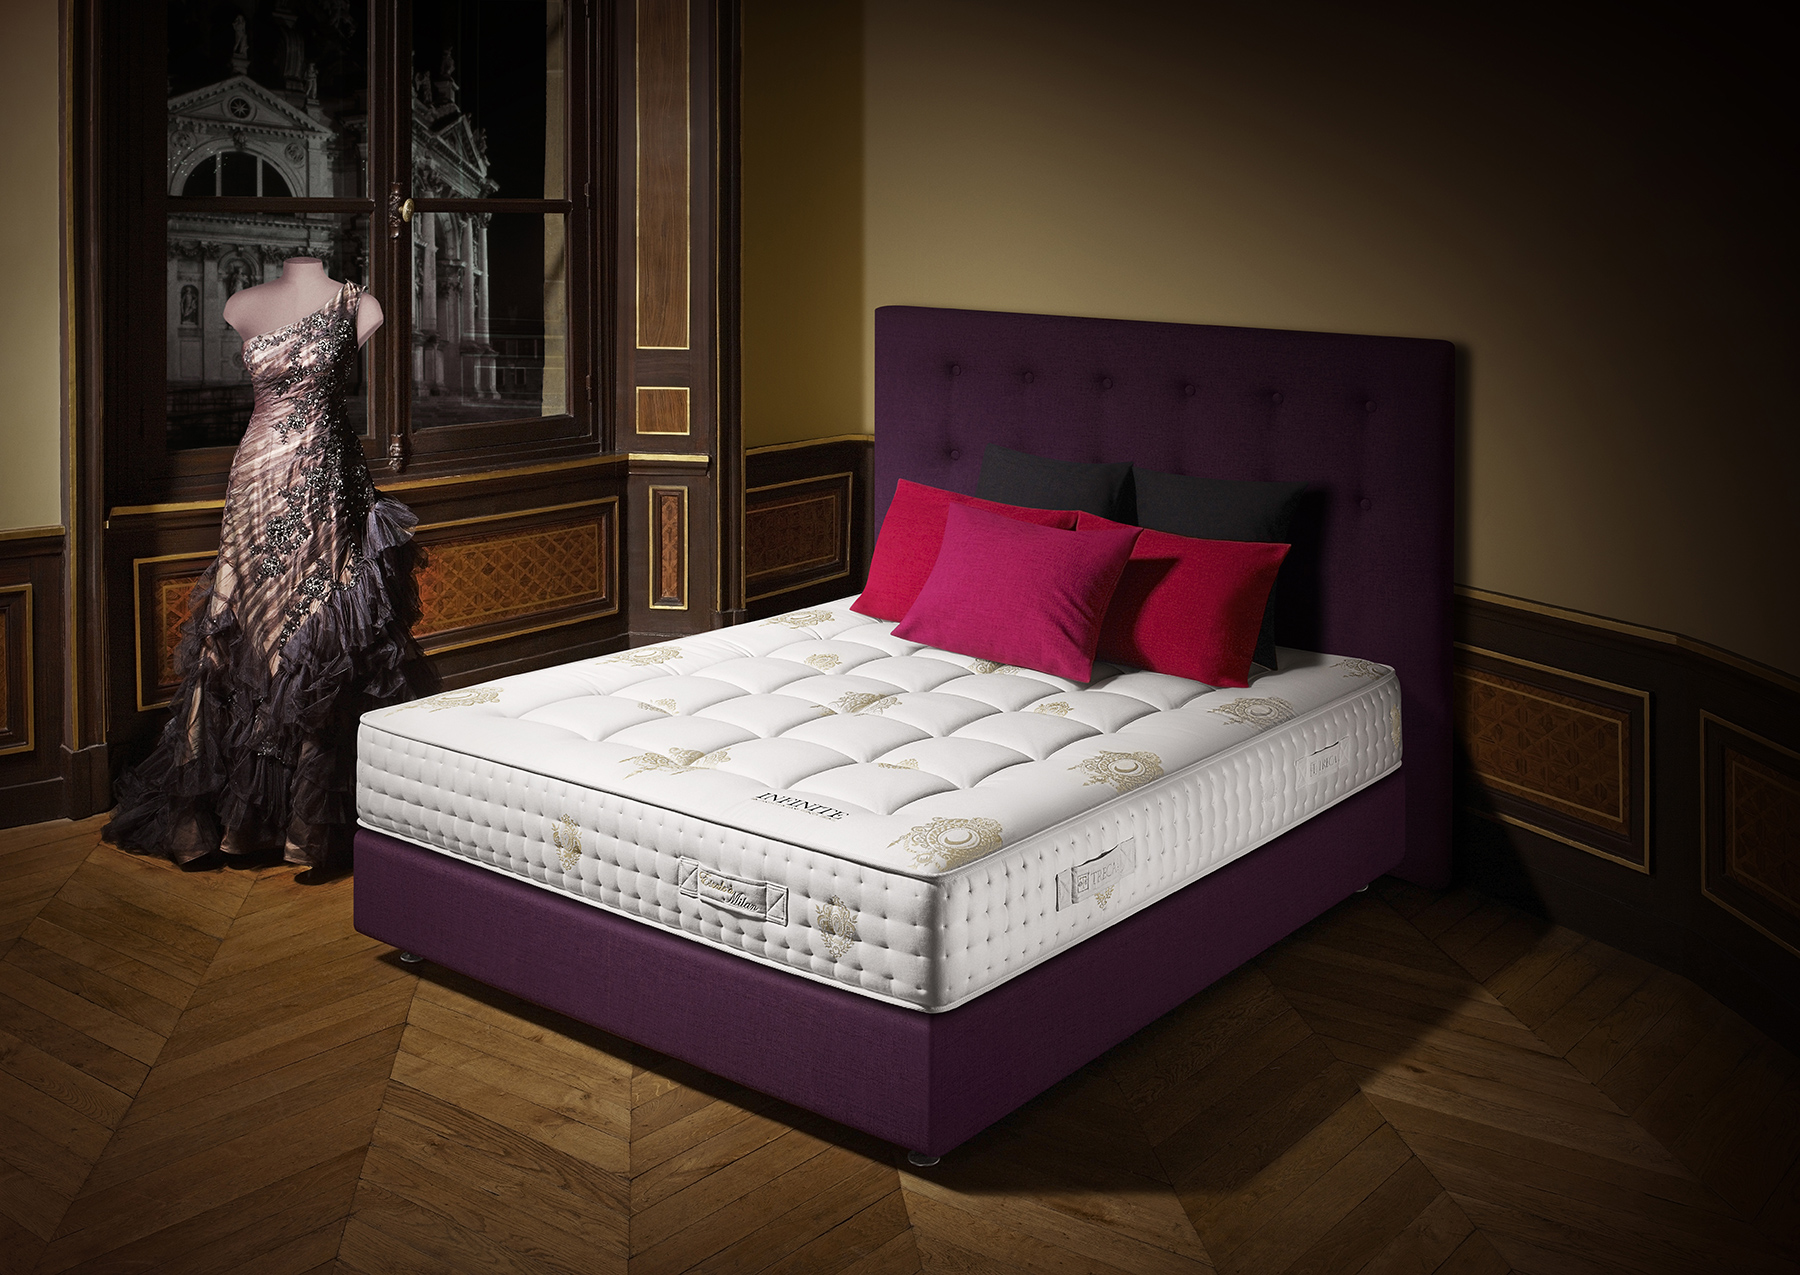 matelas grande taille hgl ballerines en matelas grande taille ftuvfjboq with matelas grande. Black Bedroom Furniture Sets. Home Design Ideas